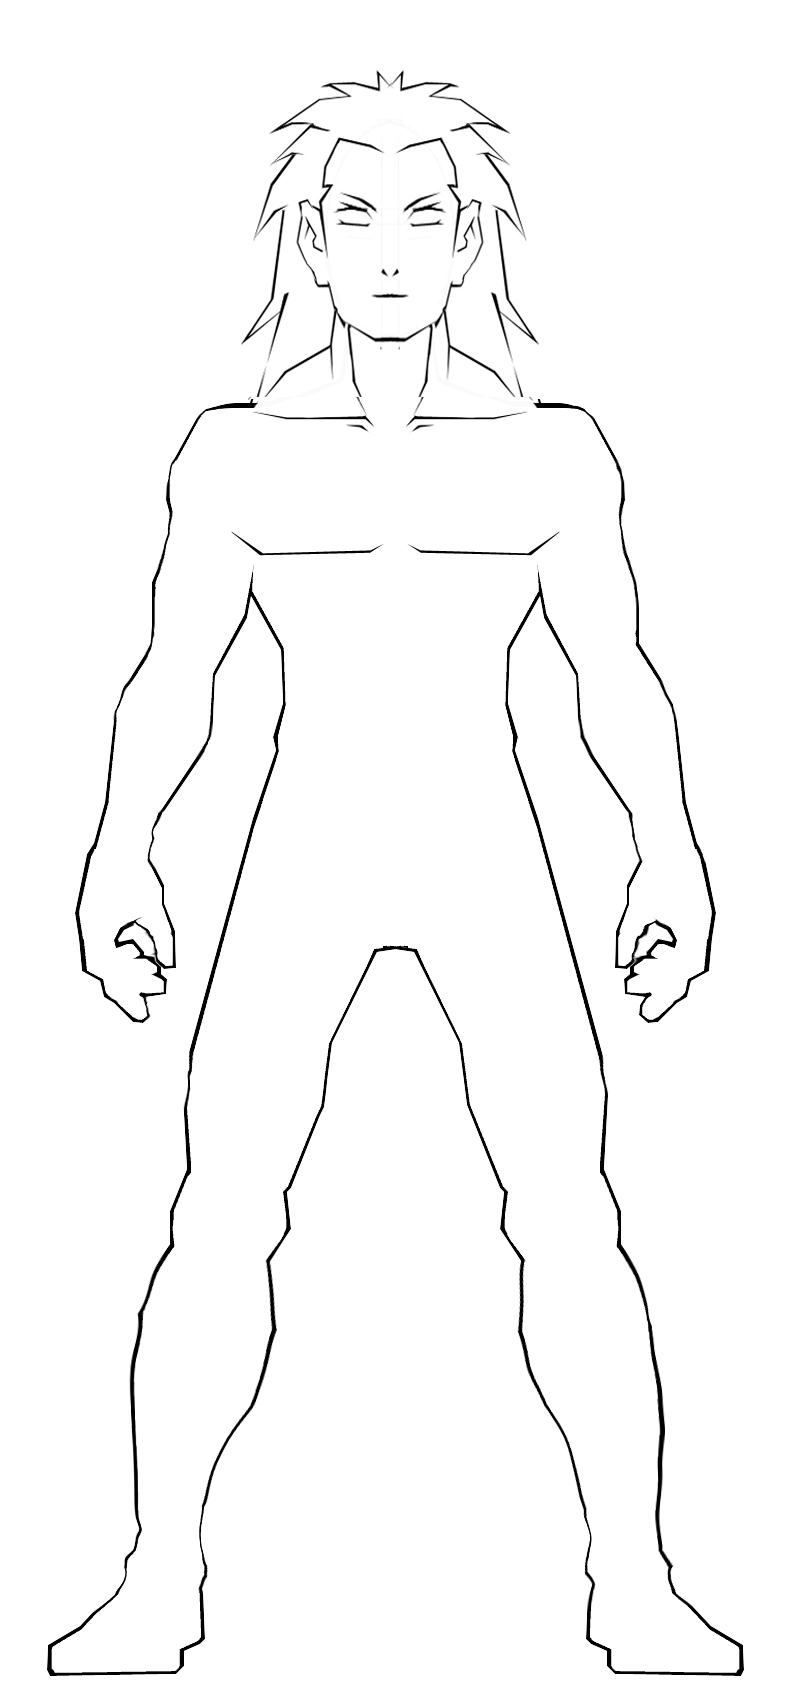 "Search Results for ""Anime Male Body Outline"" – Calendar 2015"